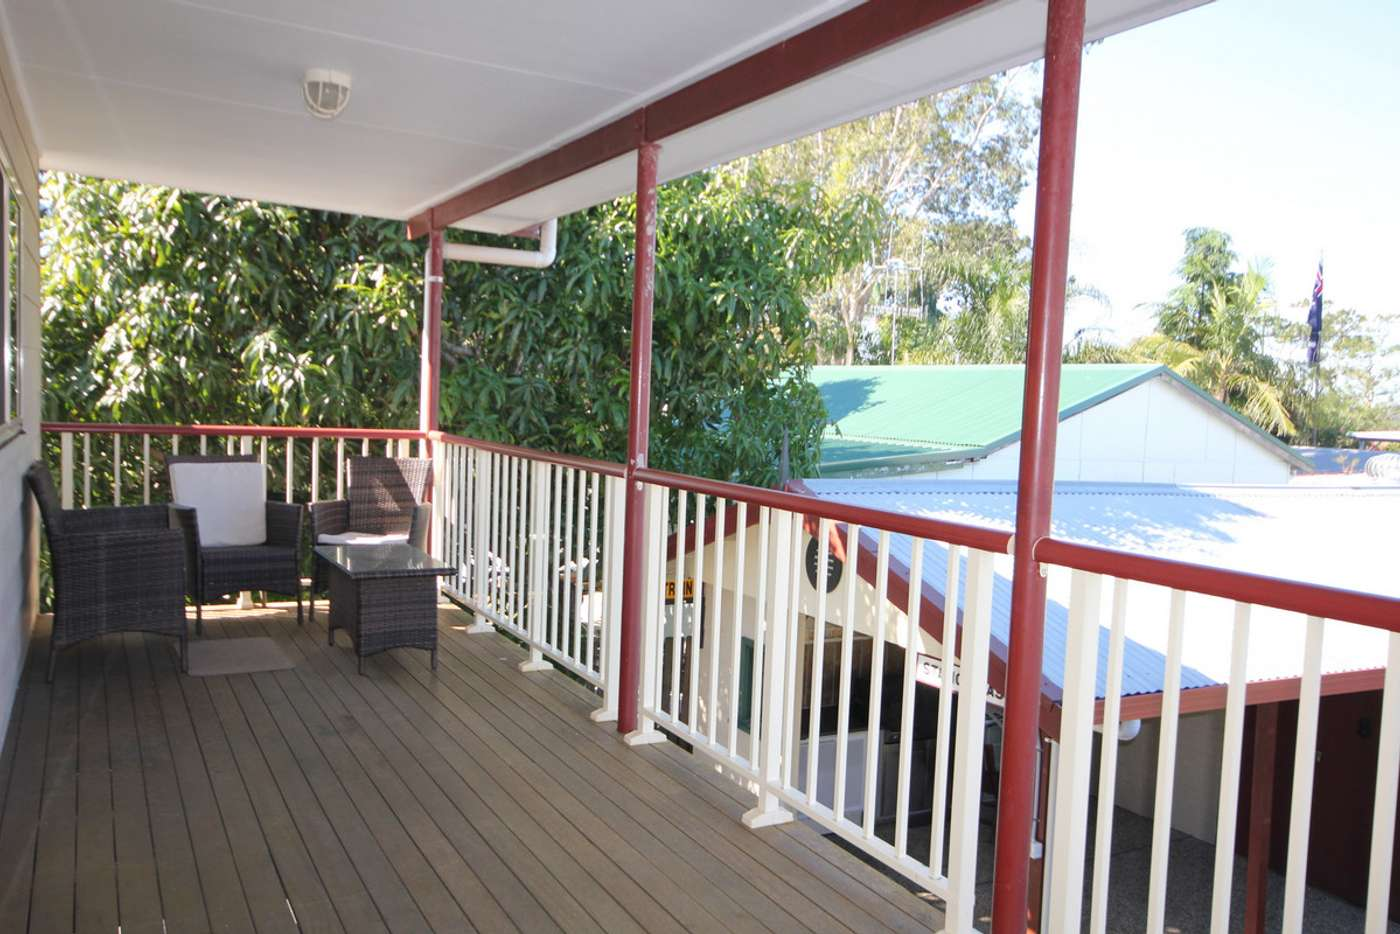 Sixth view of Homely house listing, 28 Alma Street, North Haven NSW 2443